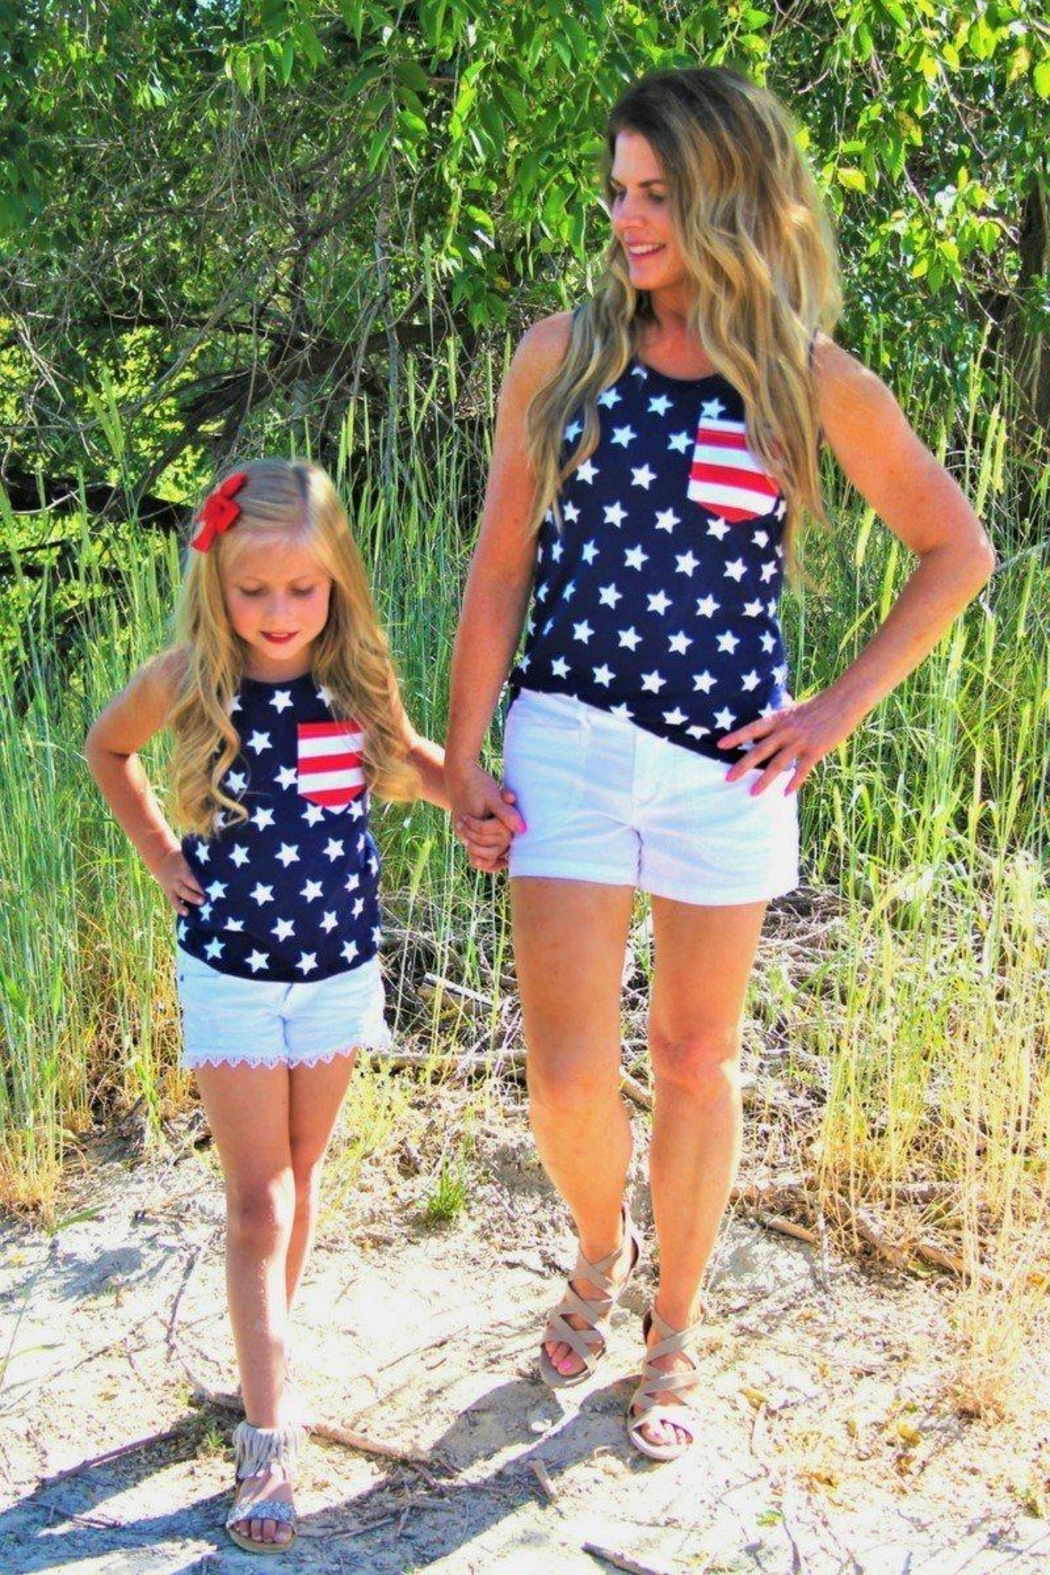 Lady's World Mini Stars & Stripes - Main Image